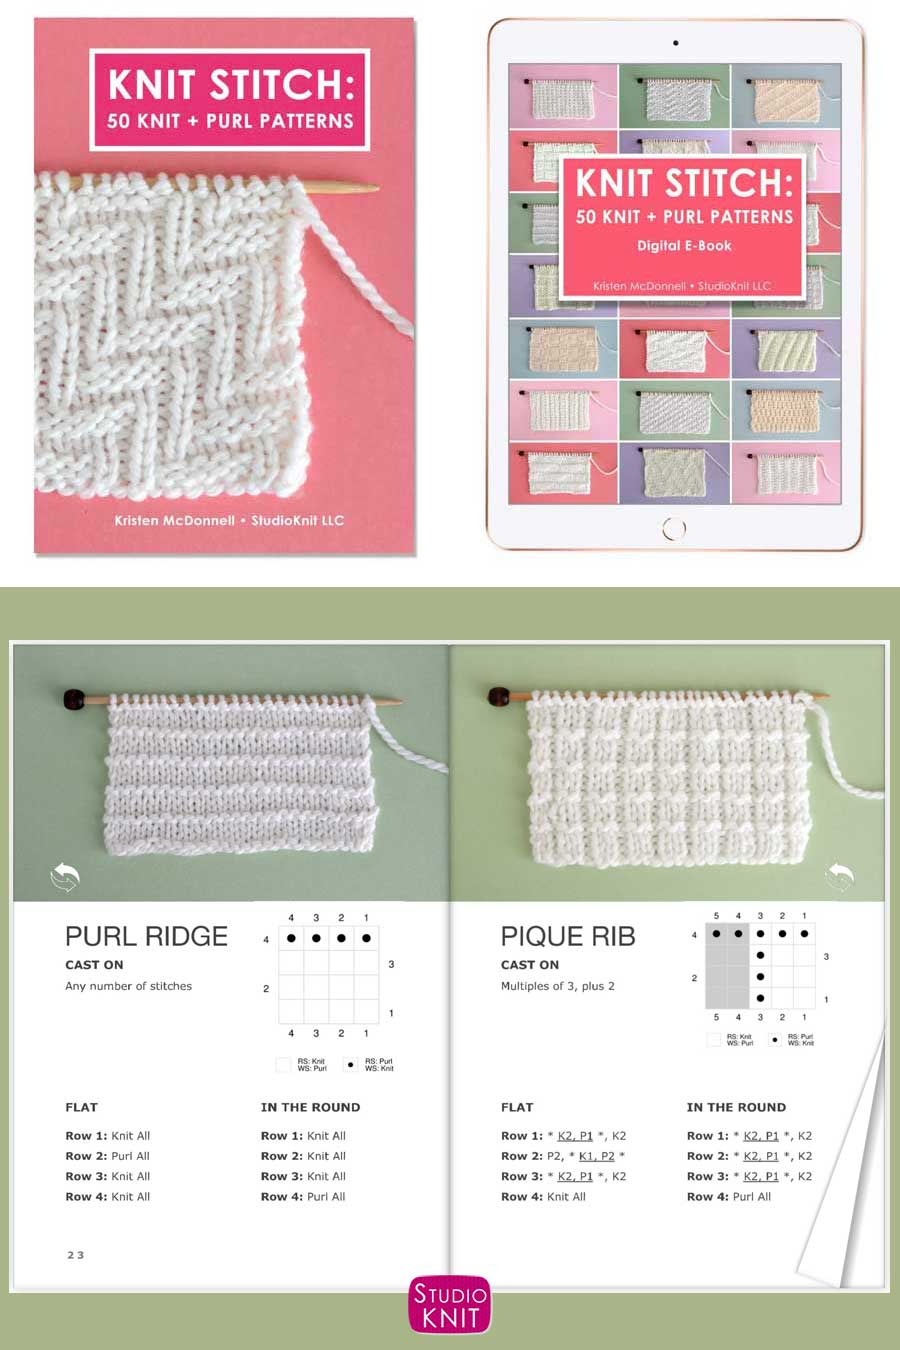 Knit Stitch Pattern Book with Purl Ridge and Pique Rib Stitches